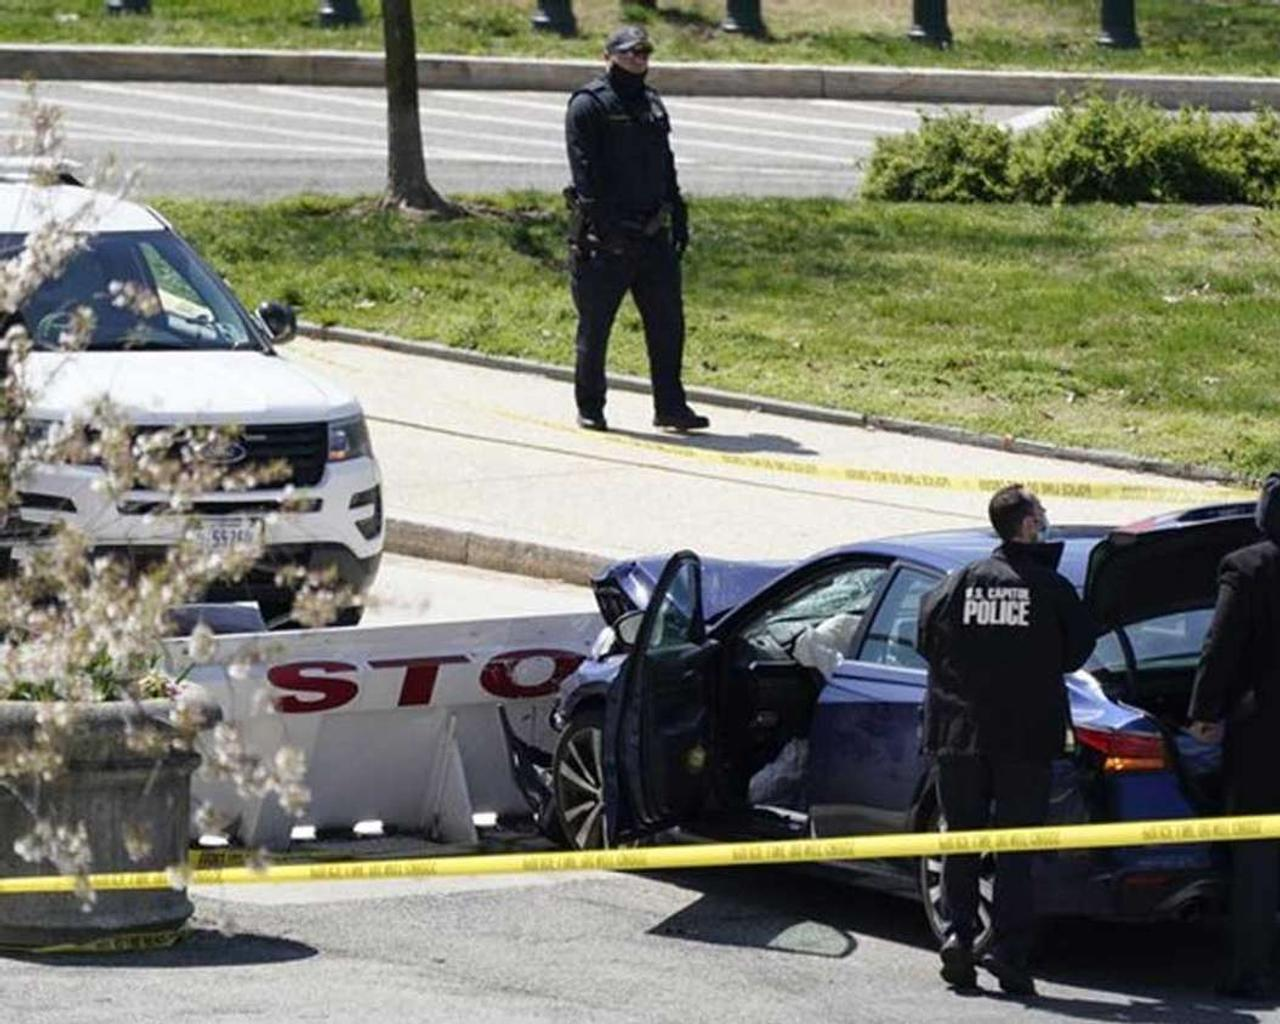 One police officer was killed and 1 was injured in a head-on collision during a roadblock outside the US Capitol